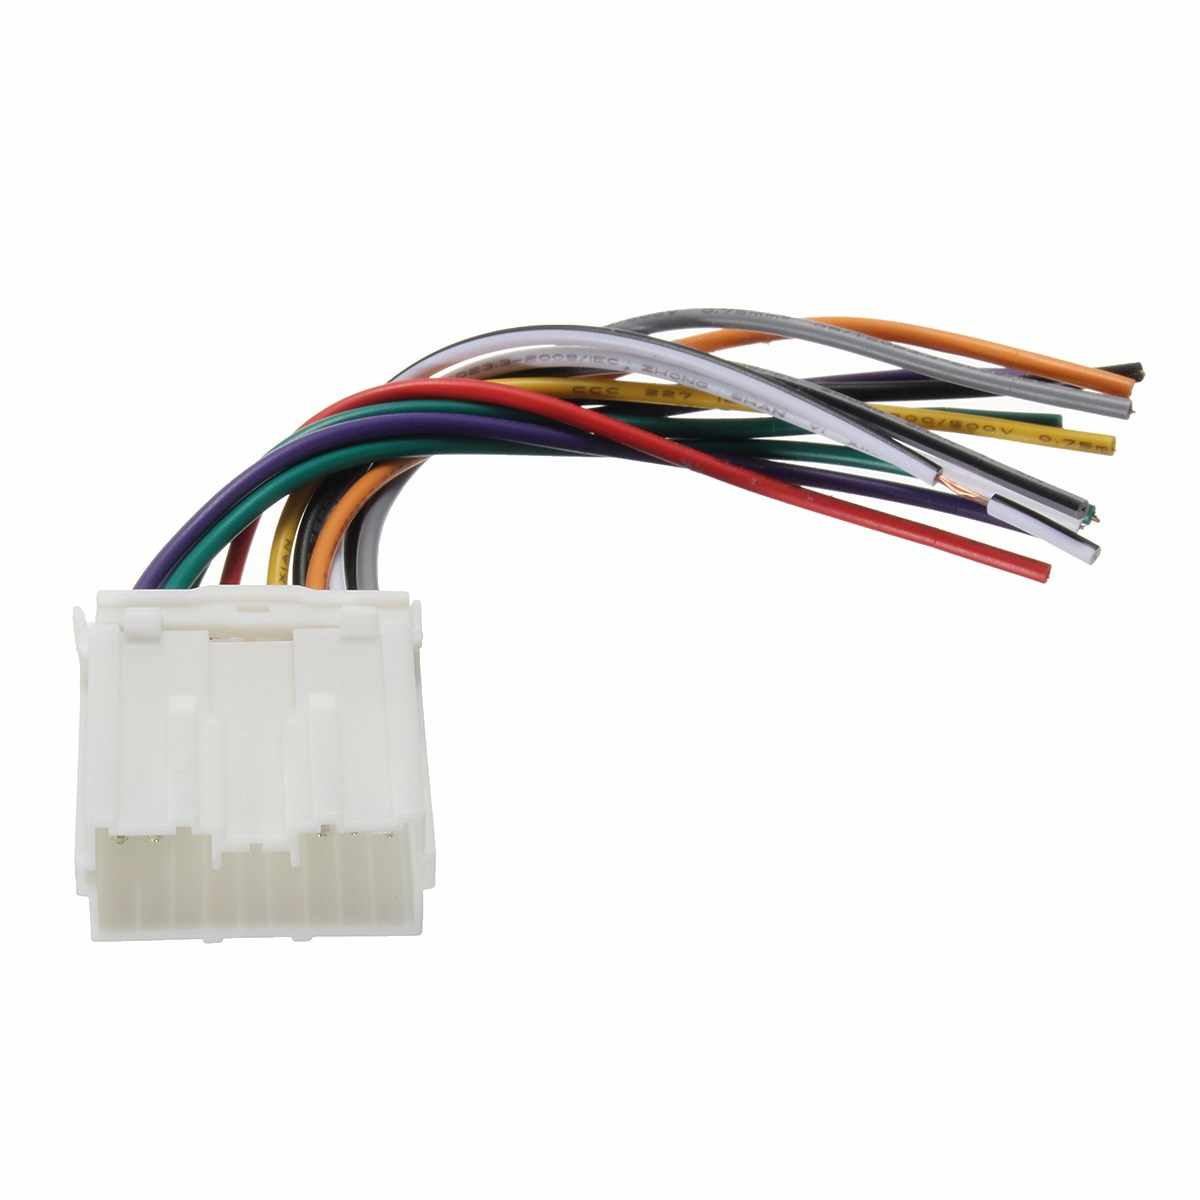 small resolution of kroak car stereo radio cd player wiring harness wire aftermarket for mitsubishi dwh612